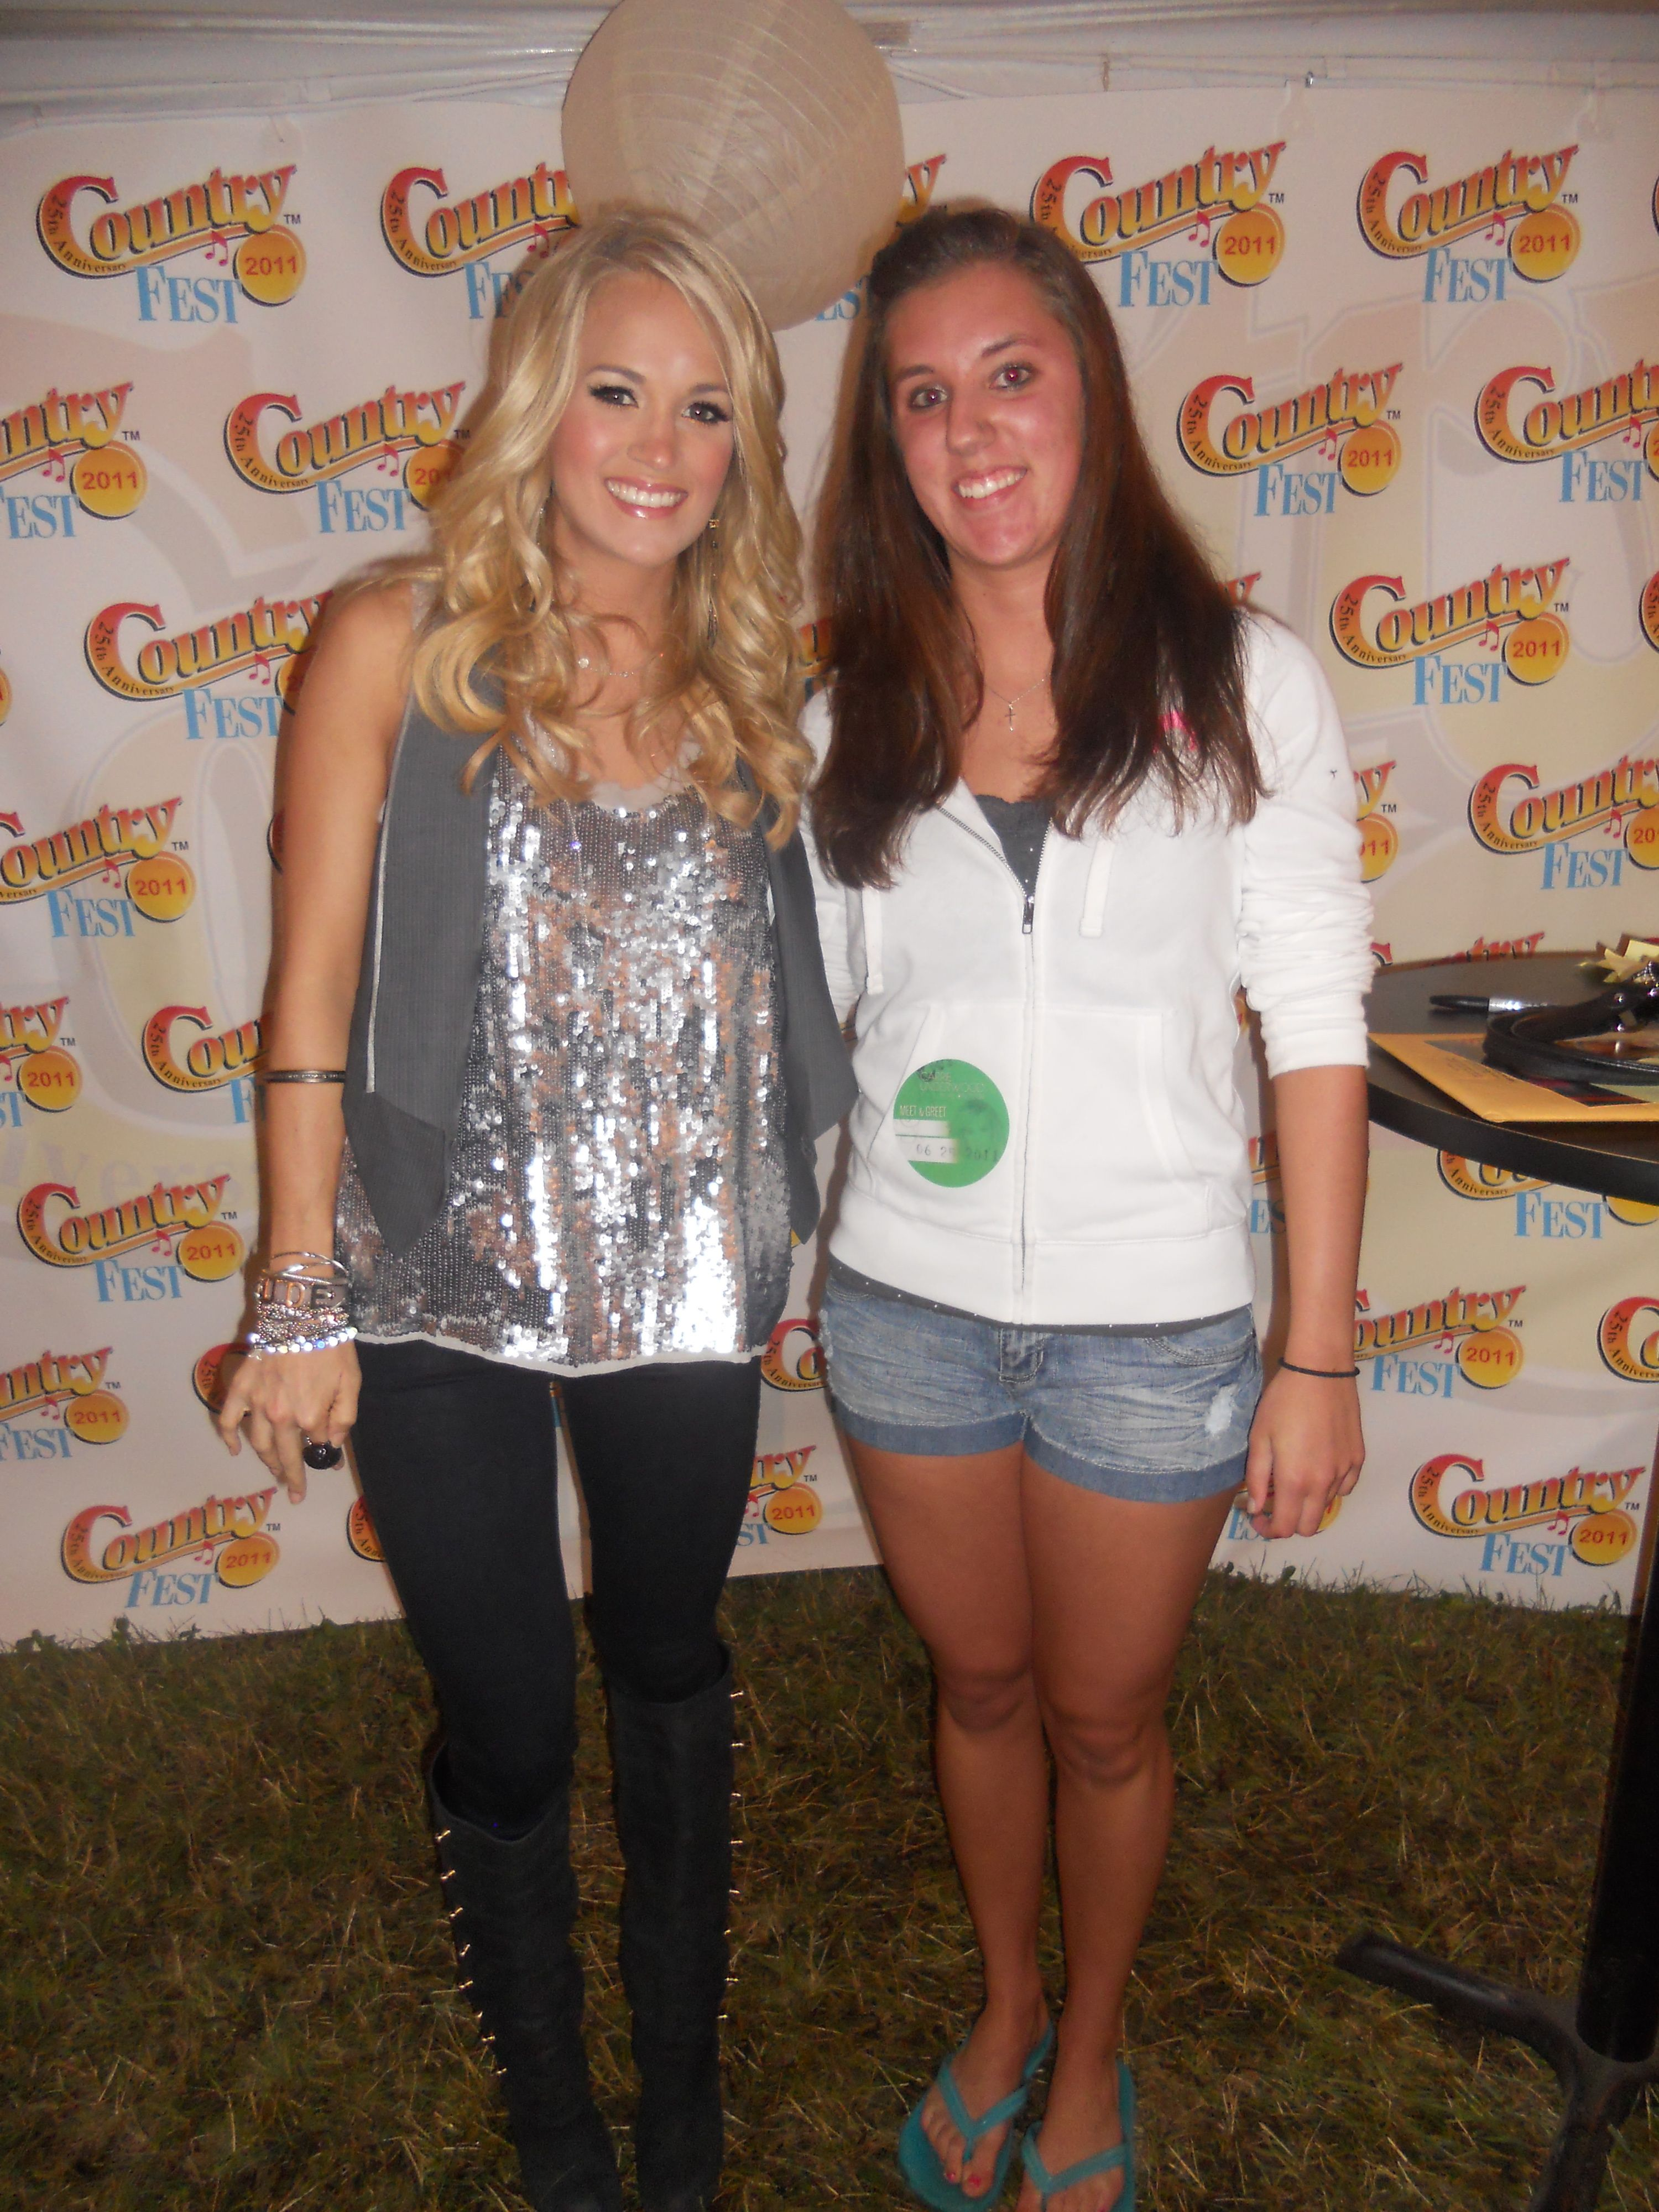 Carrie Underwood Meet N Greet From Country Fest 11 Countryfest